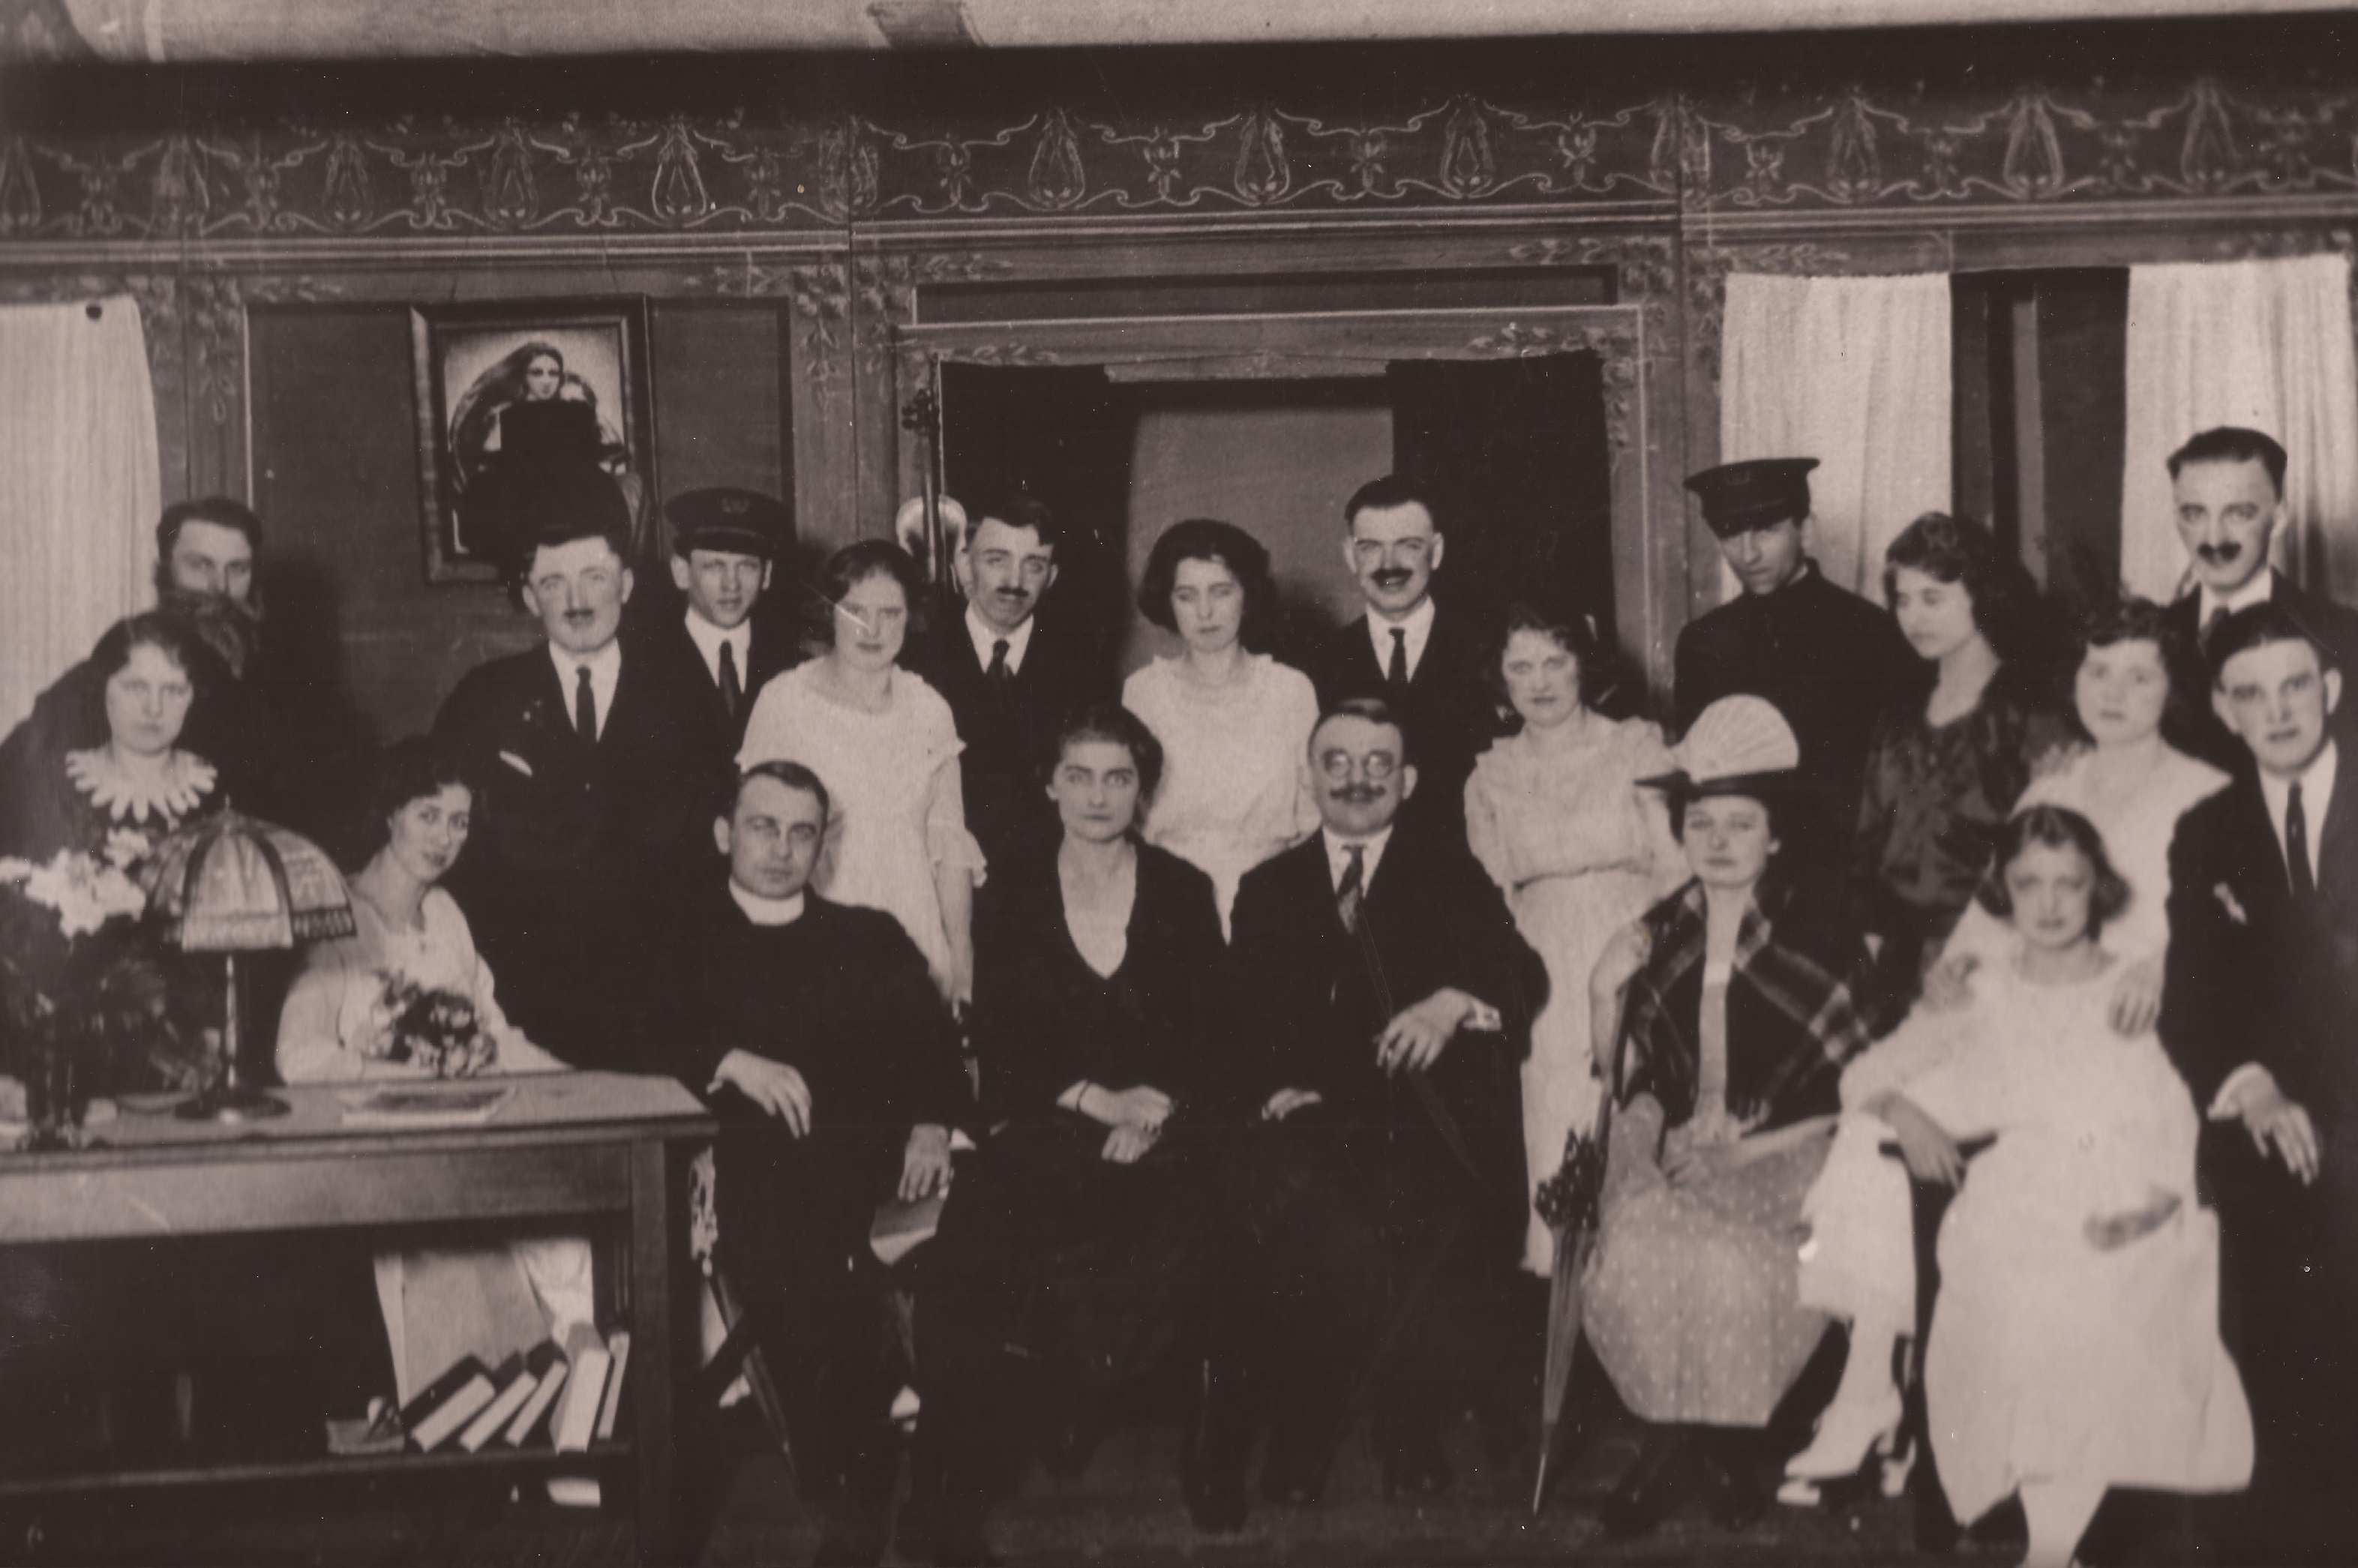 Polish Dramatic Society, 1920. The dapper mustachioed gent at center is John C. Bambenek.